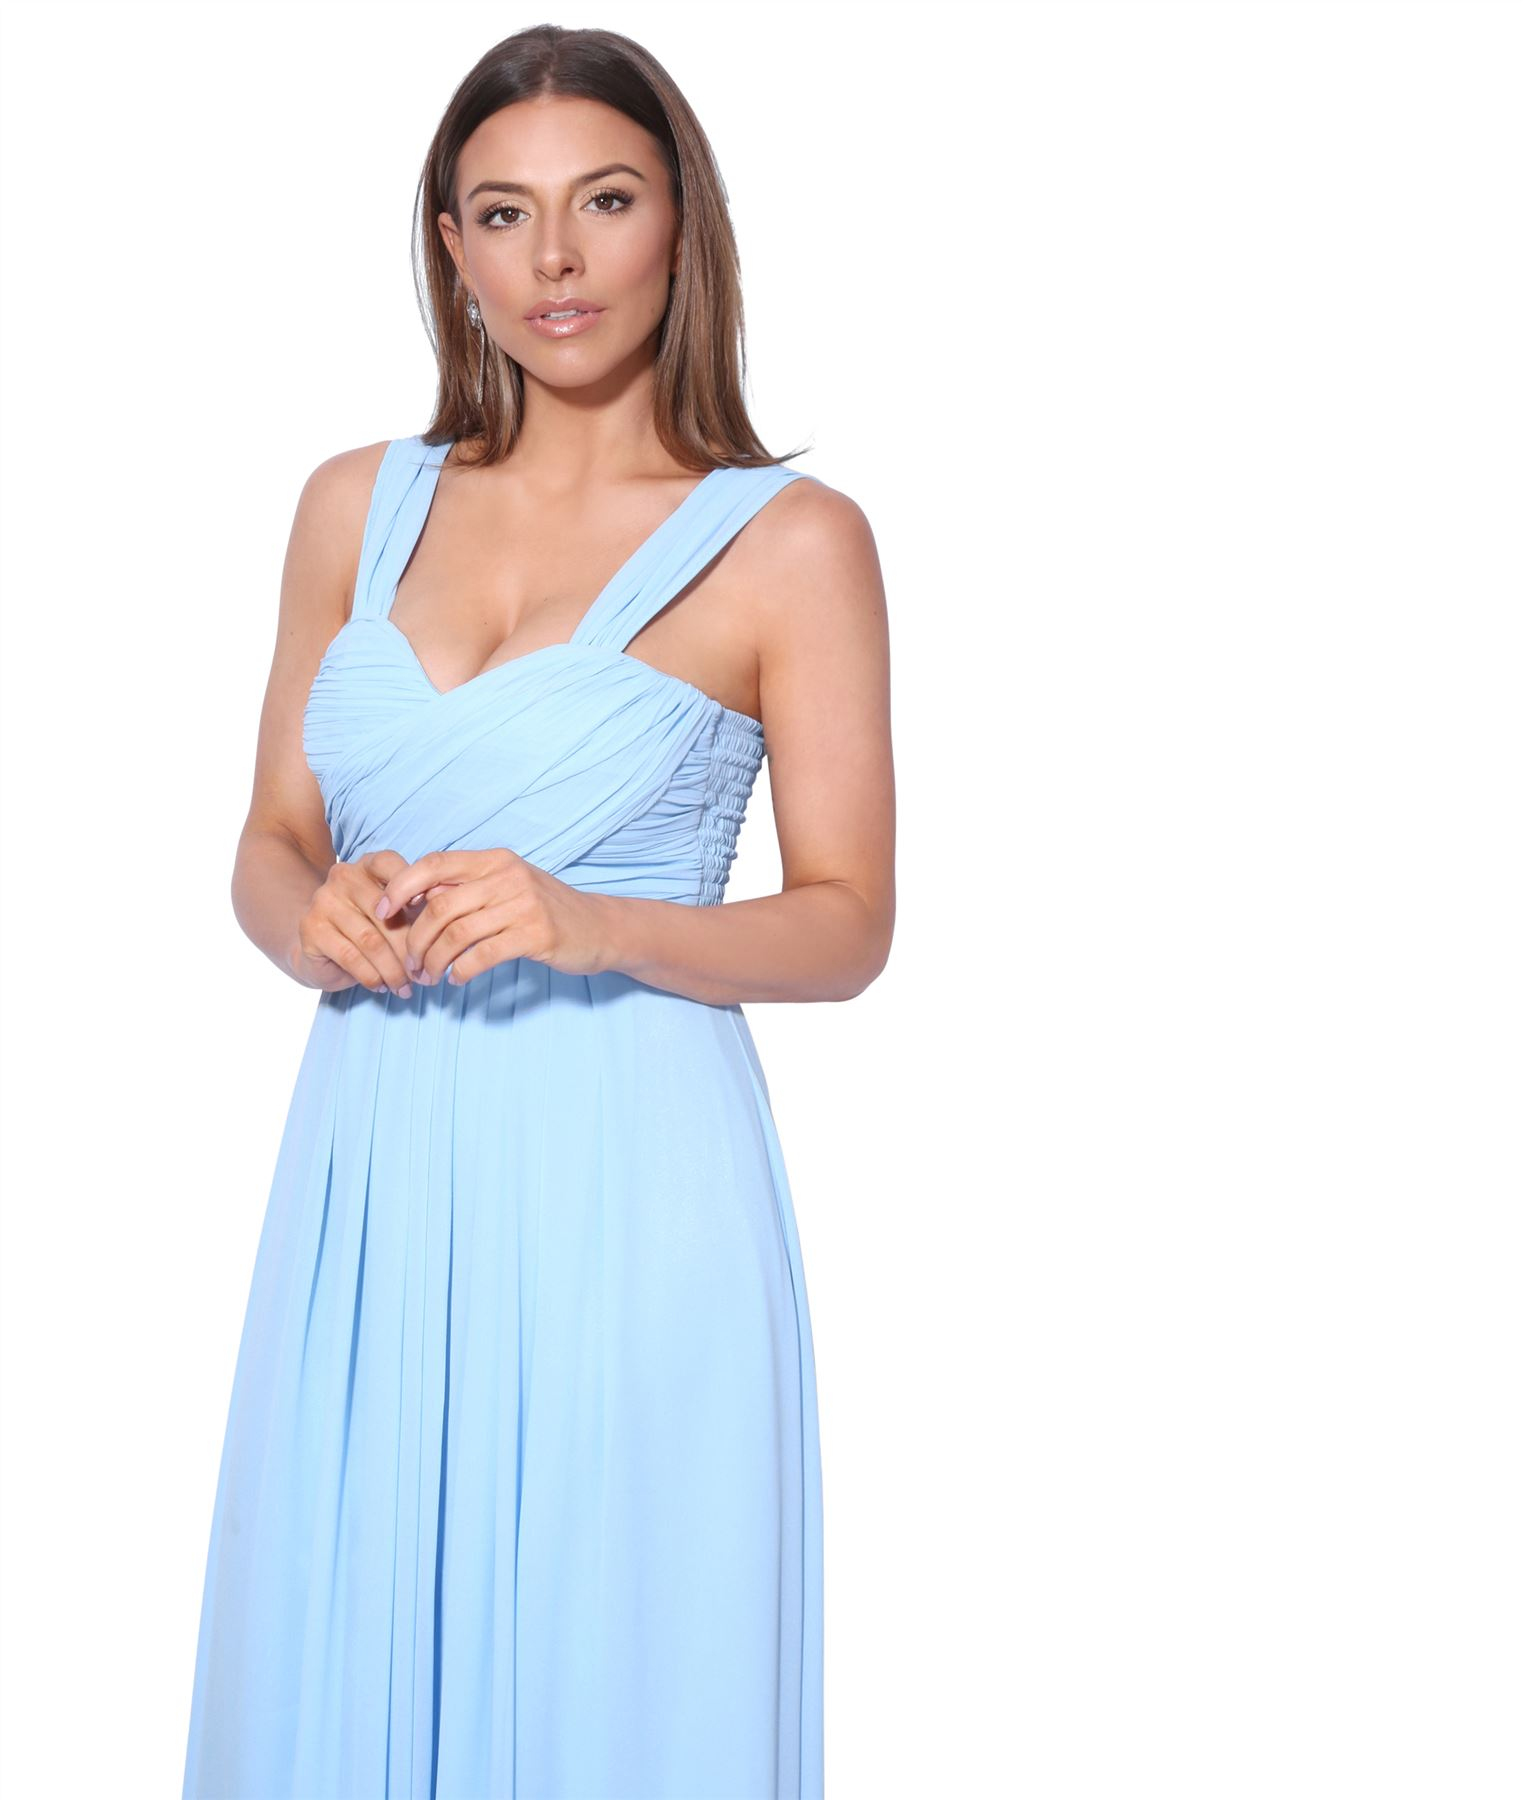 Womens-Formal-Evening-Wedding-Maxi-Prom-Dress-Long-On-Off-Shoulder-Ball-Gown thumbnail 5